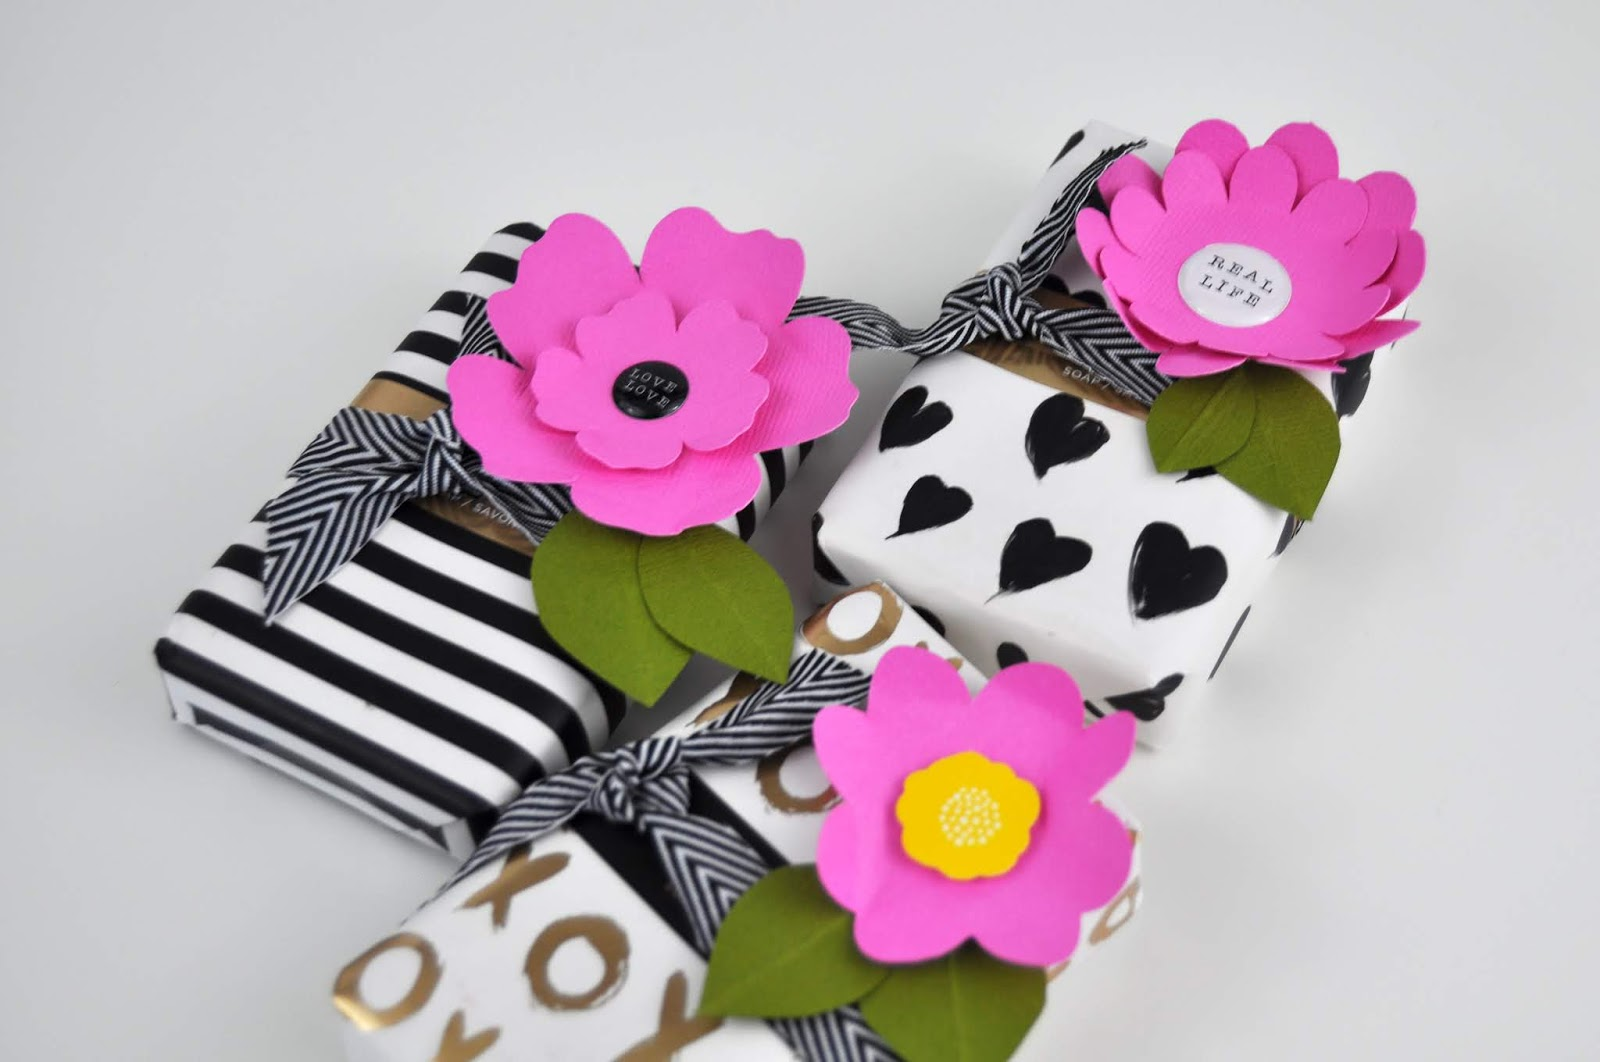 Wrapped soap bar presents tutorial with Jen Gallacher sponsored by Scrapbook.com. #papercraft #diecutting #adhesive